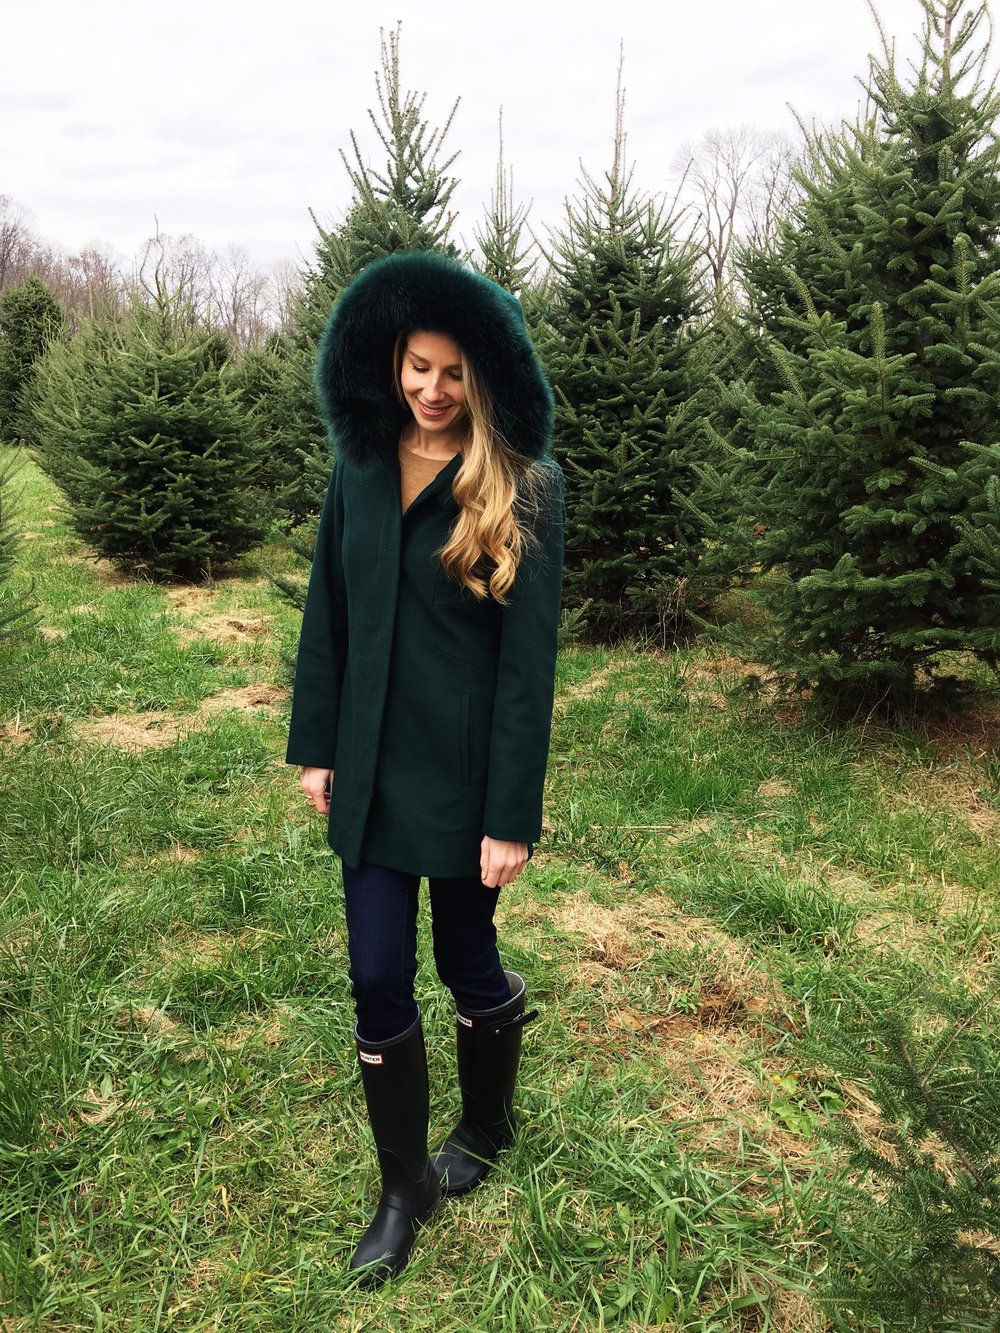 Christmasing earlier this month // Details here